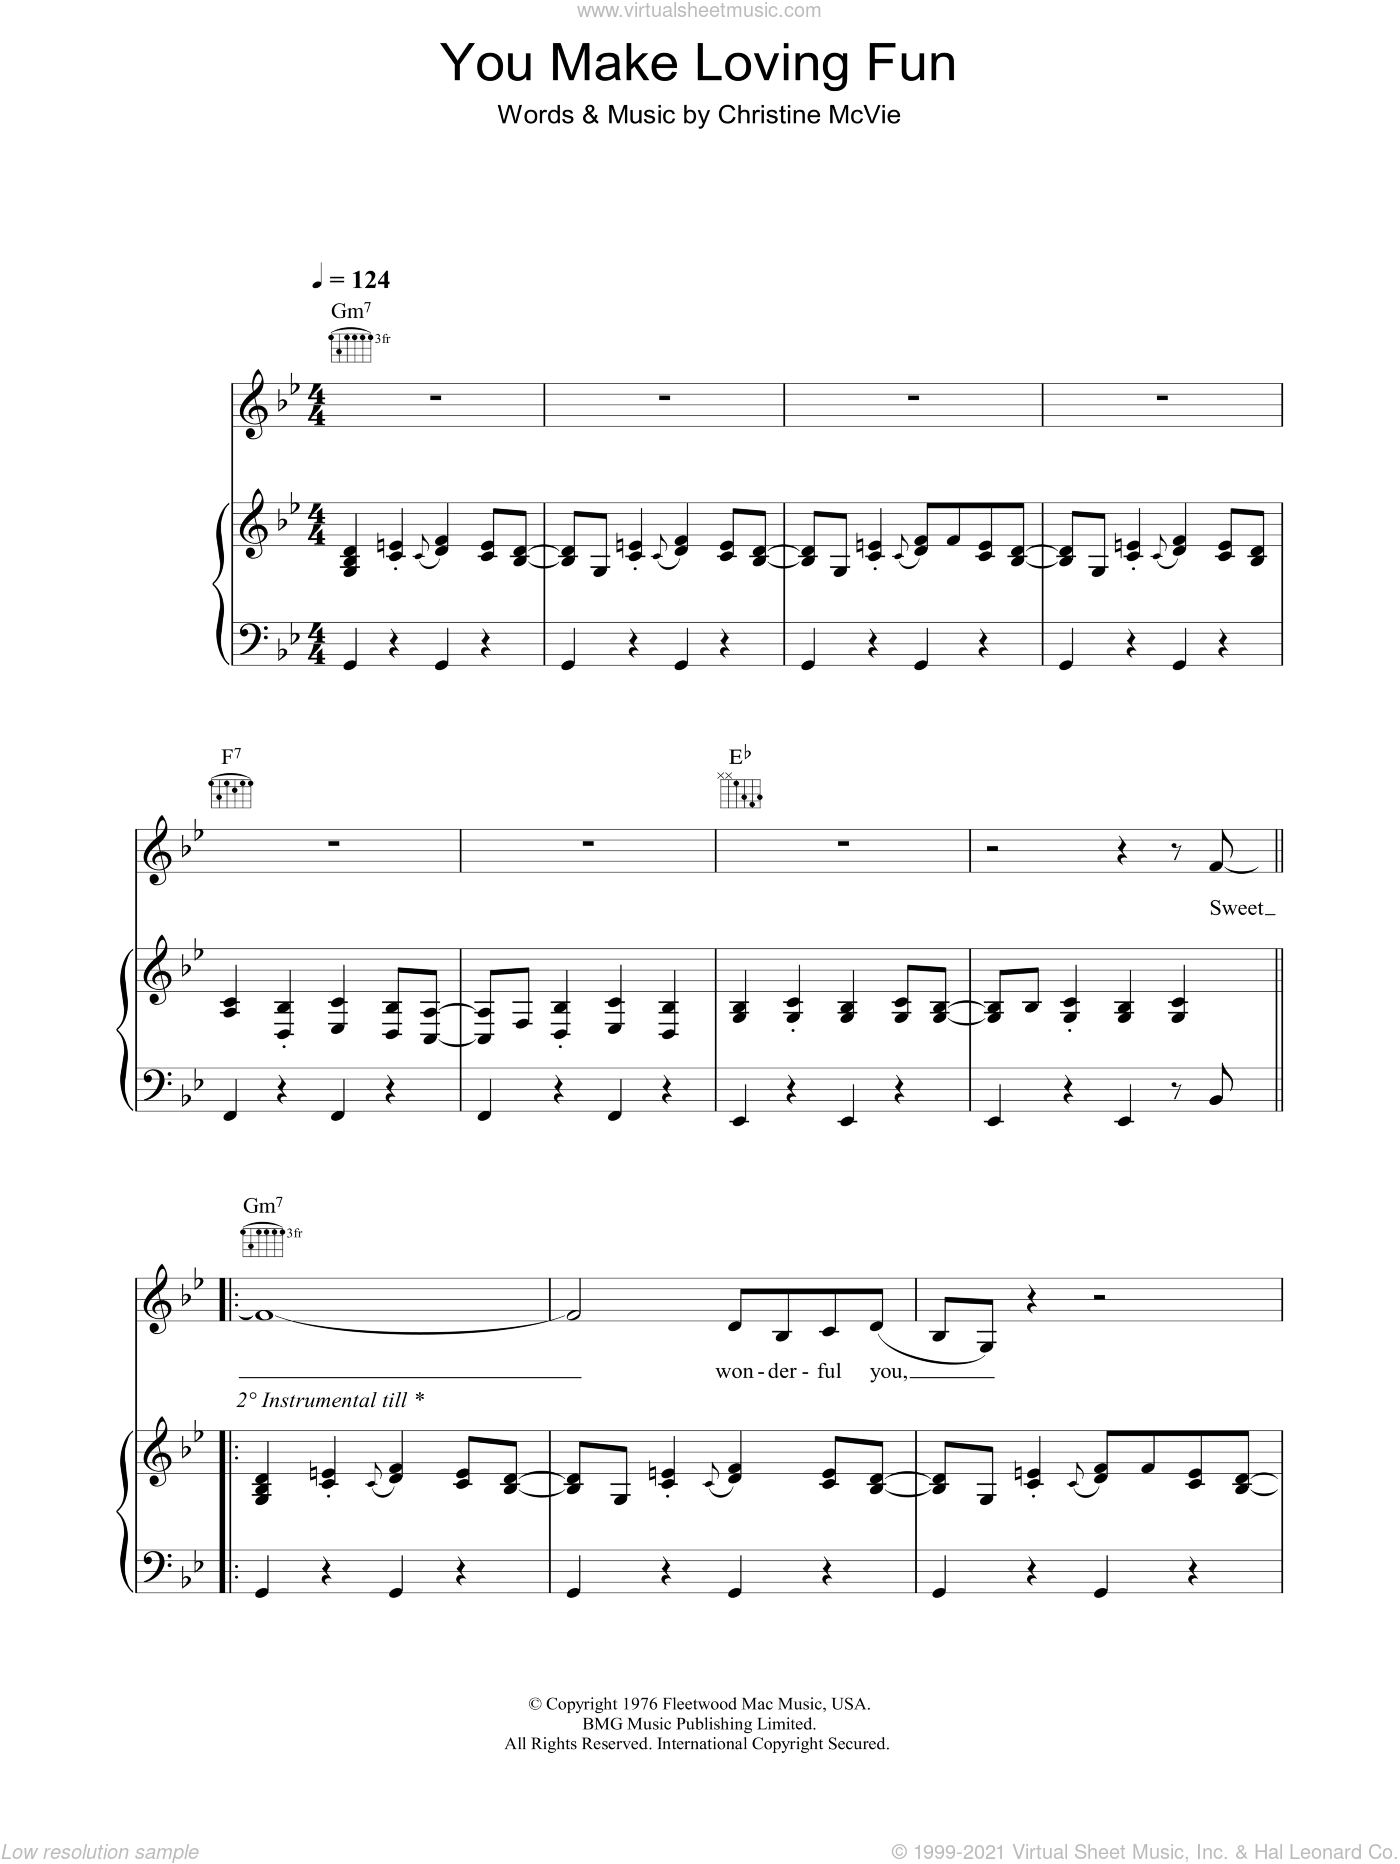 You Make Loving Fun sheet music for voice, piano or guitar by Fleetwood Mac and Christine McVie, intermediate skill level